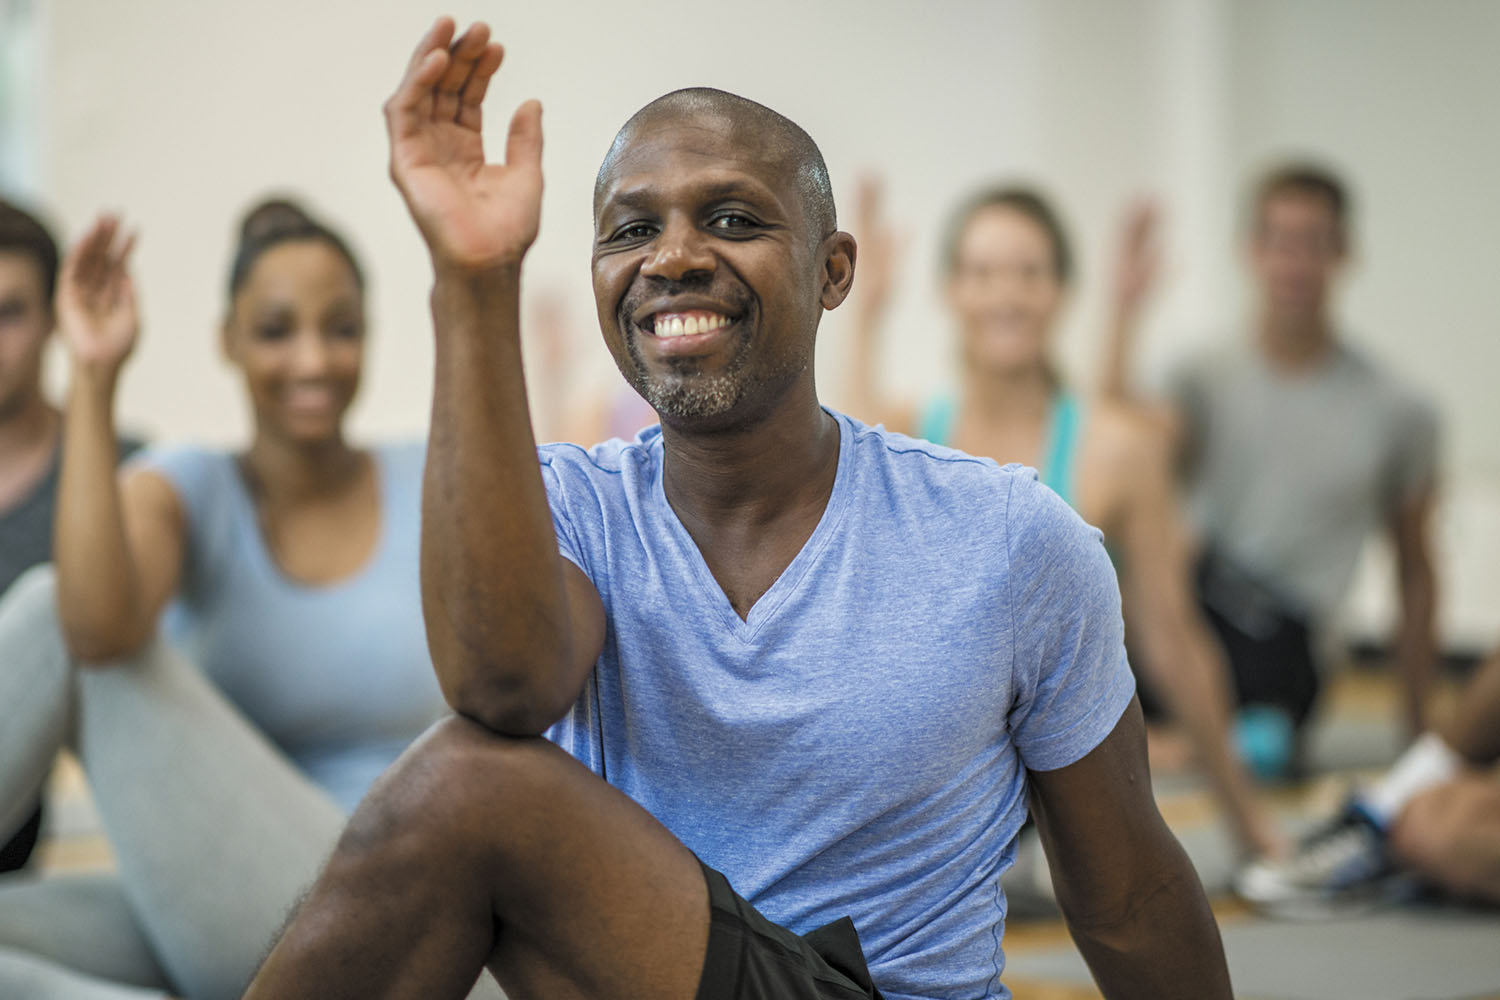 The safe way to do yoga for back pain - Harvard Health